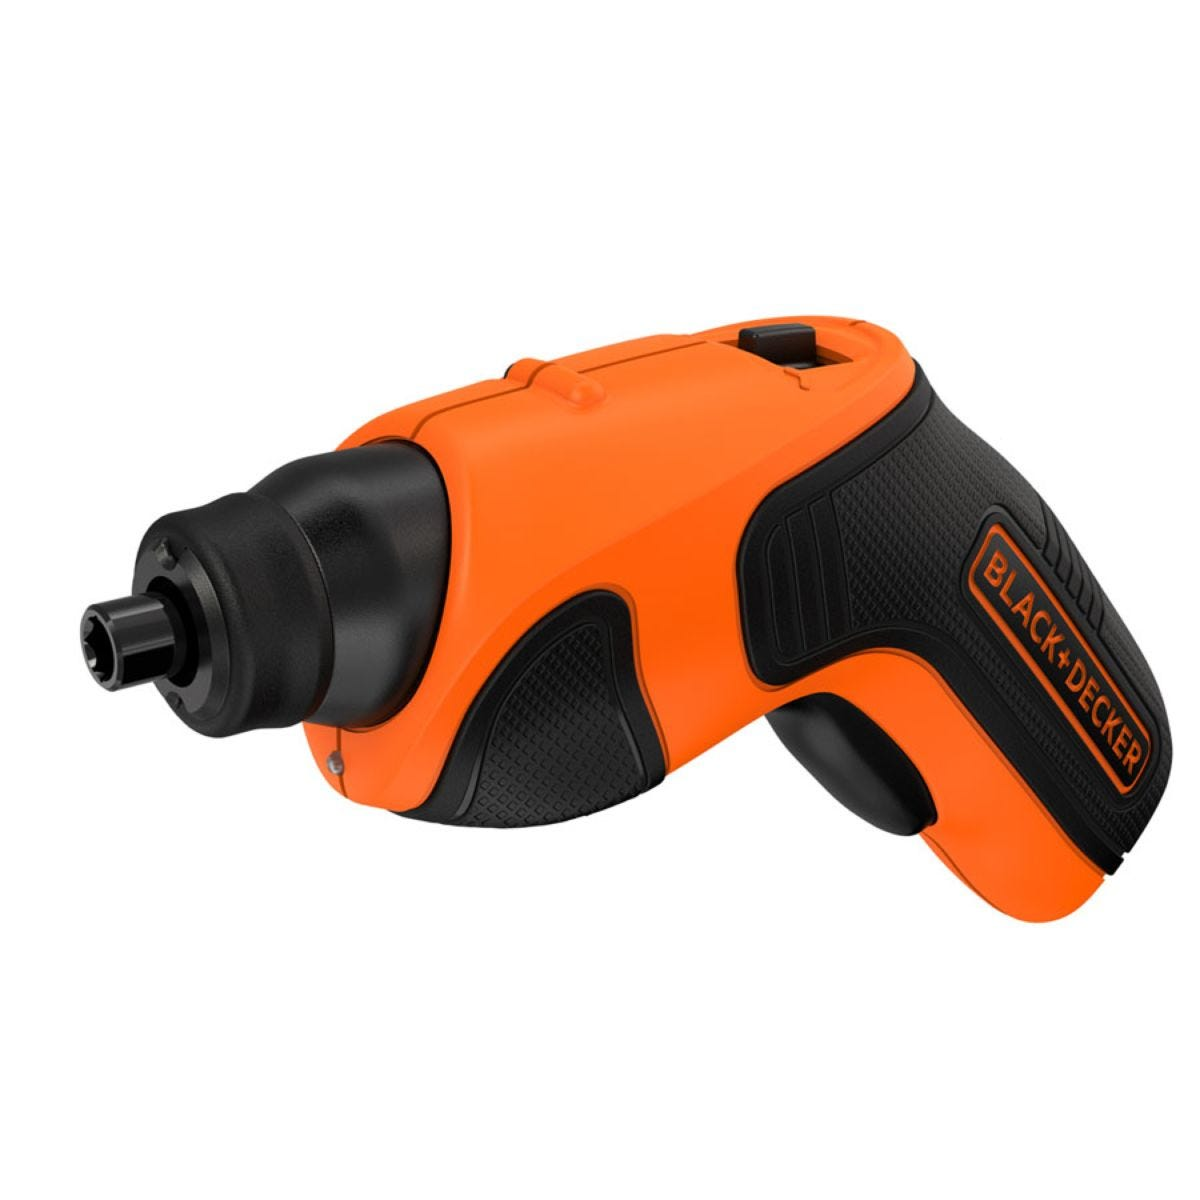 Black & Decker 3.6V Li-Ion Screwdriver